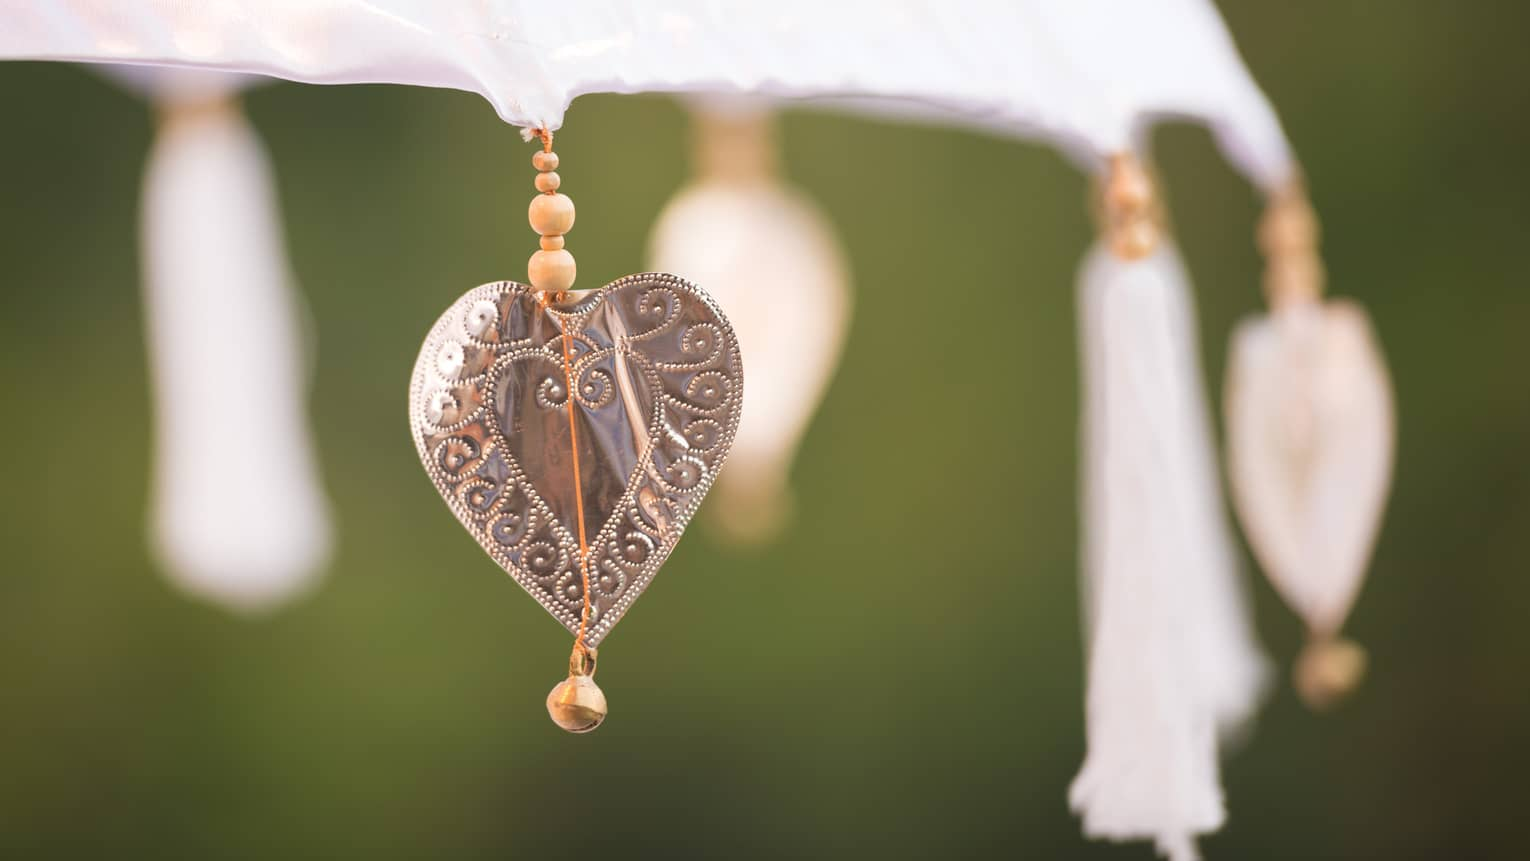 Close up of heart shaped charm, tassels